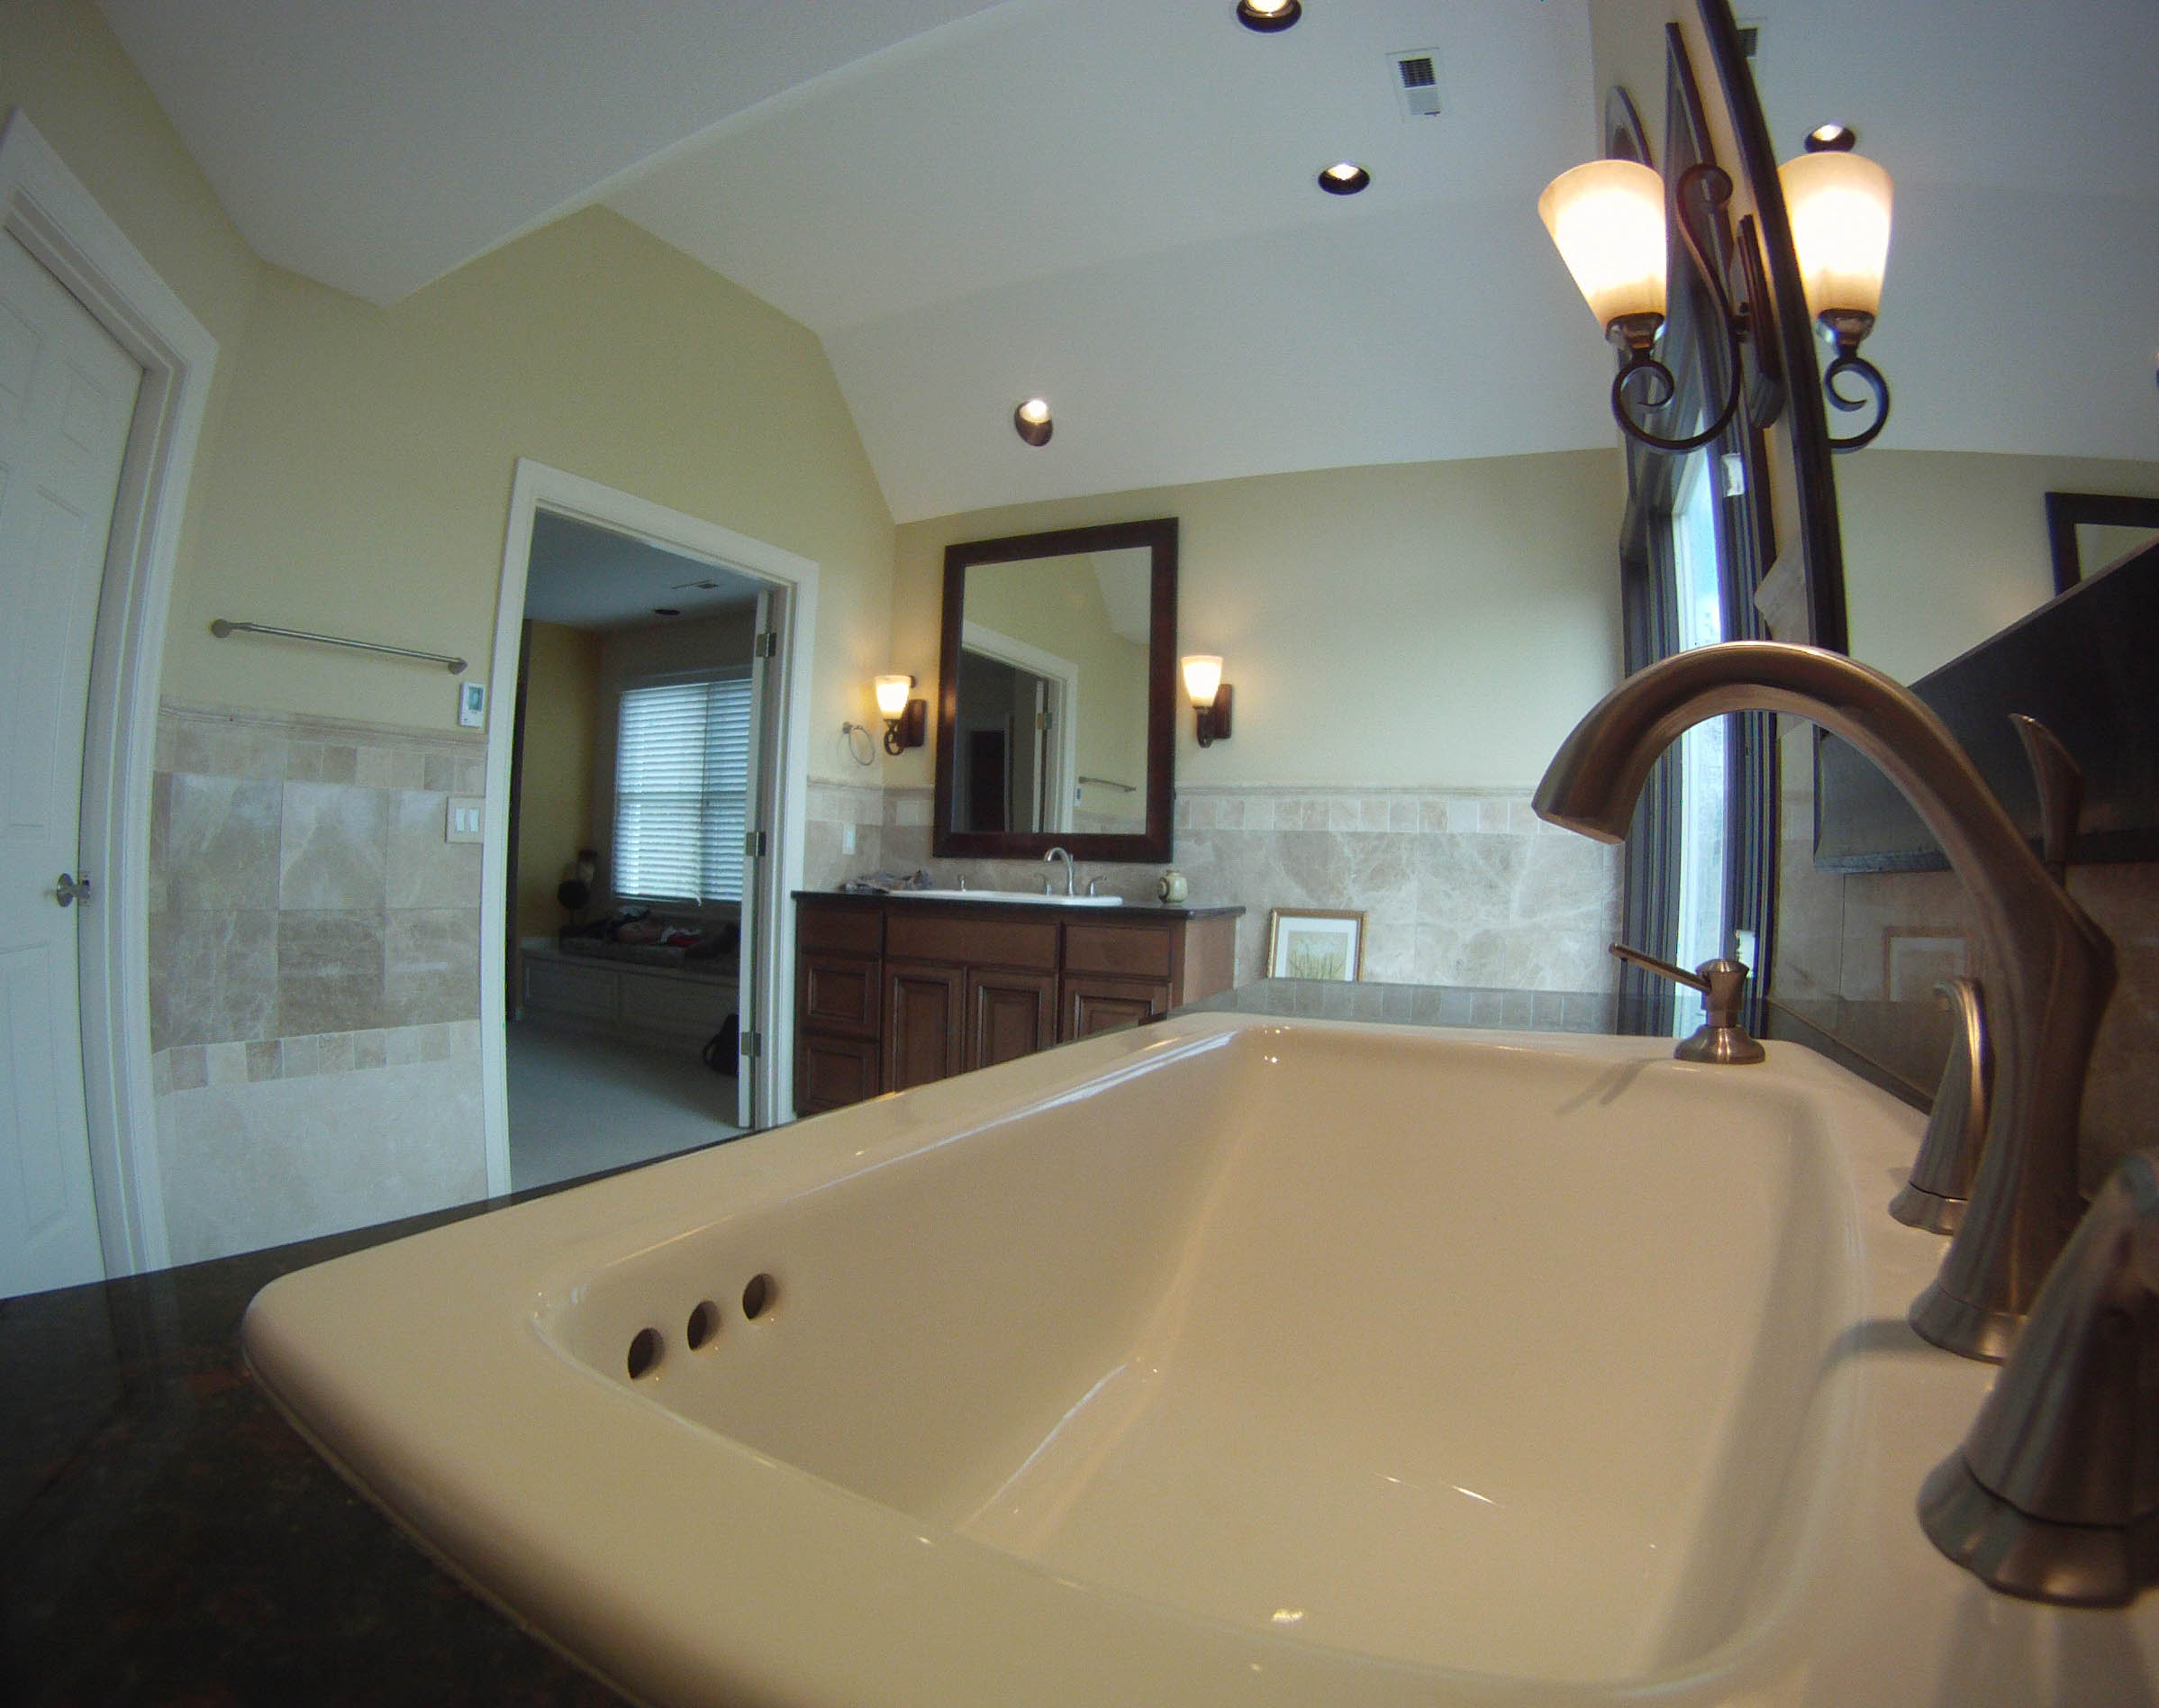 low cost bathroom remodel ideas 3 low cost bathroom remodel ideas affinity home amp design 25055